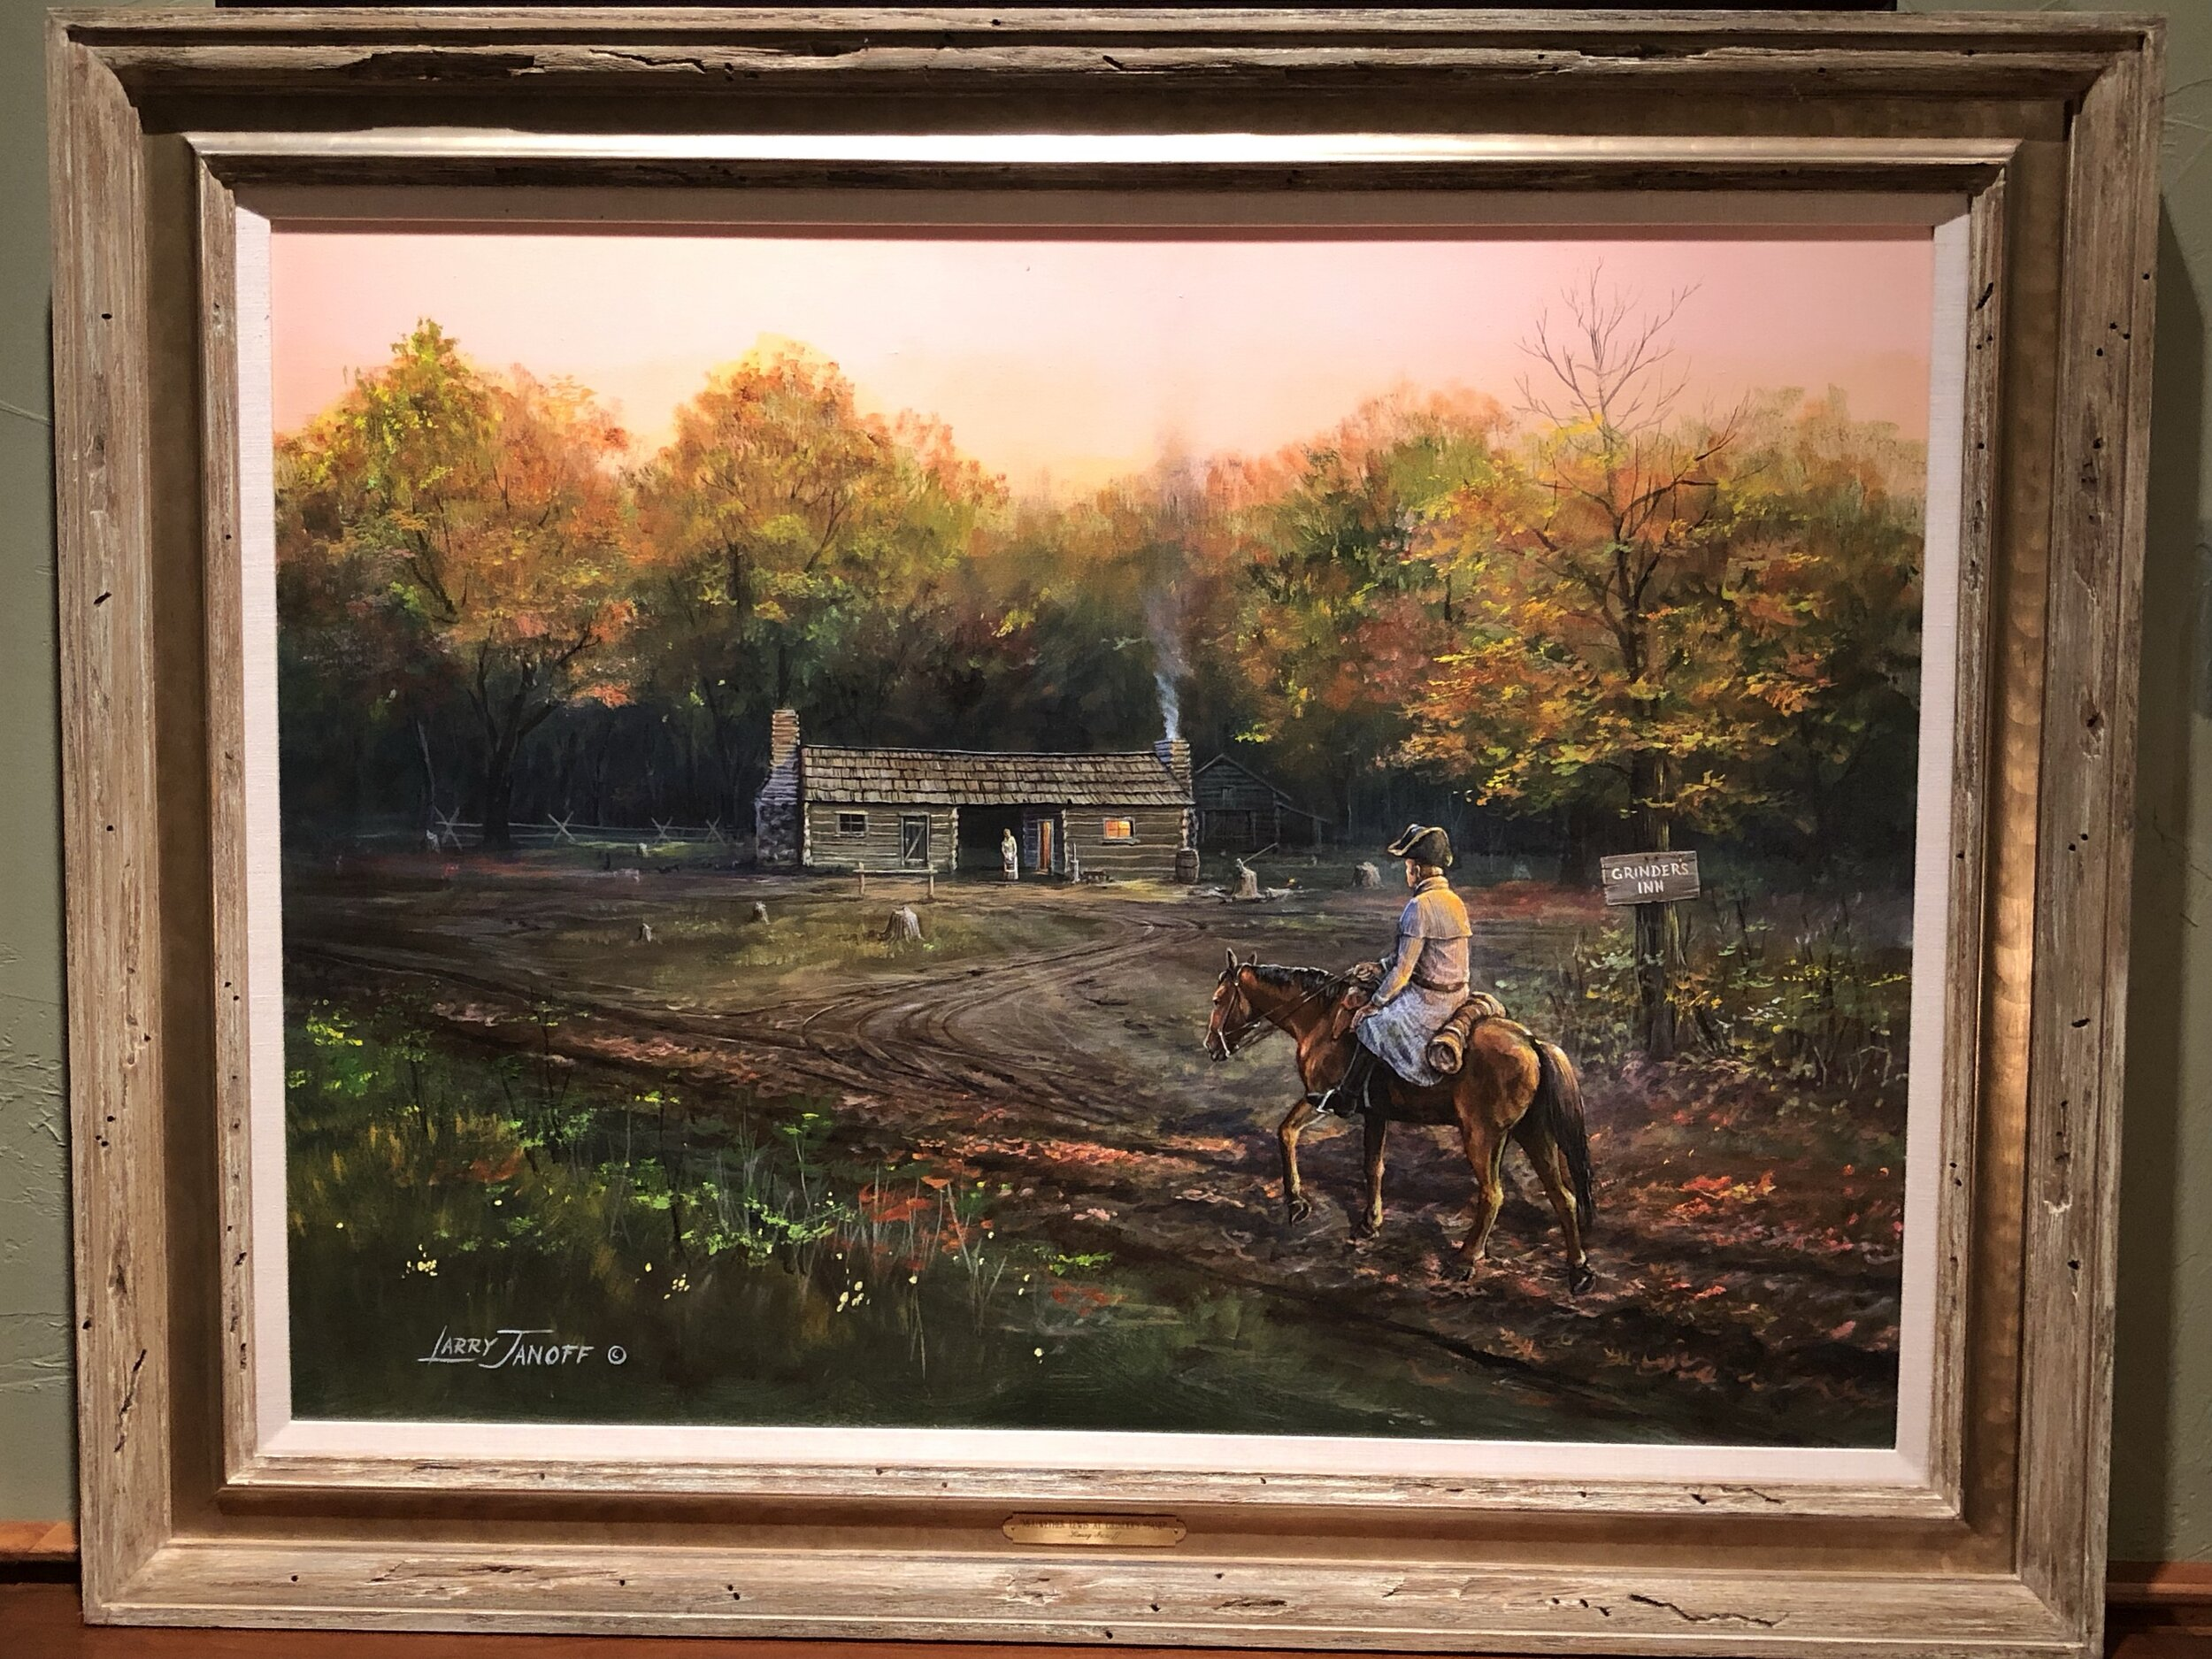 Original Larry Janoff painting. Acrylic. Janoff is an award winning painter from Big Fork who has two pieces in the permanent collection of the Smithsonian. He is best known for scenes from the 19th Century American West, including the Lewis and Clark Expedition. -